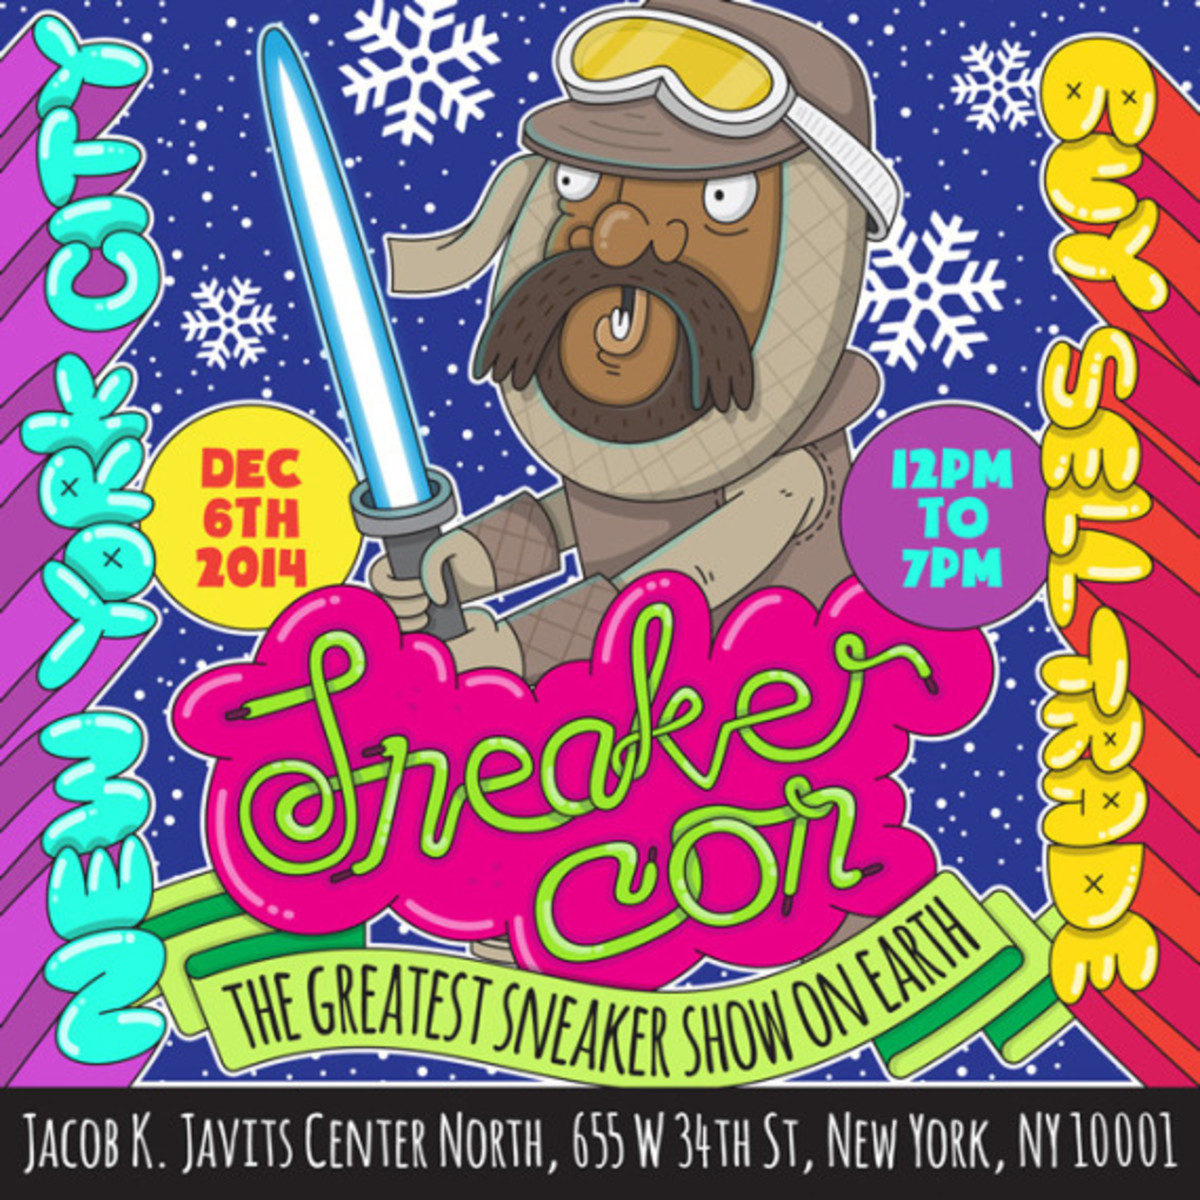 Sneaker Con New York City – December 6th, 2014 | Event Reminder - 4